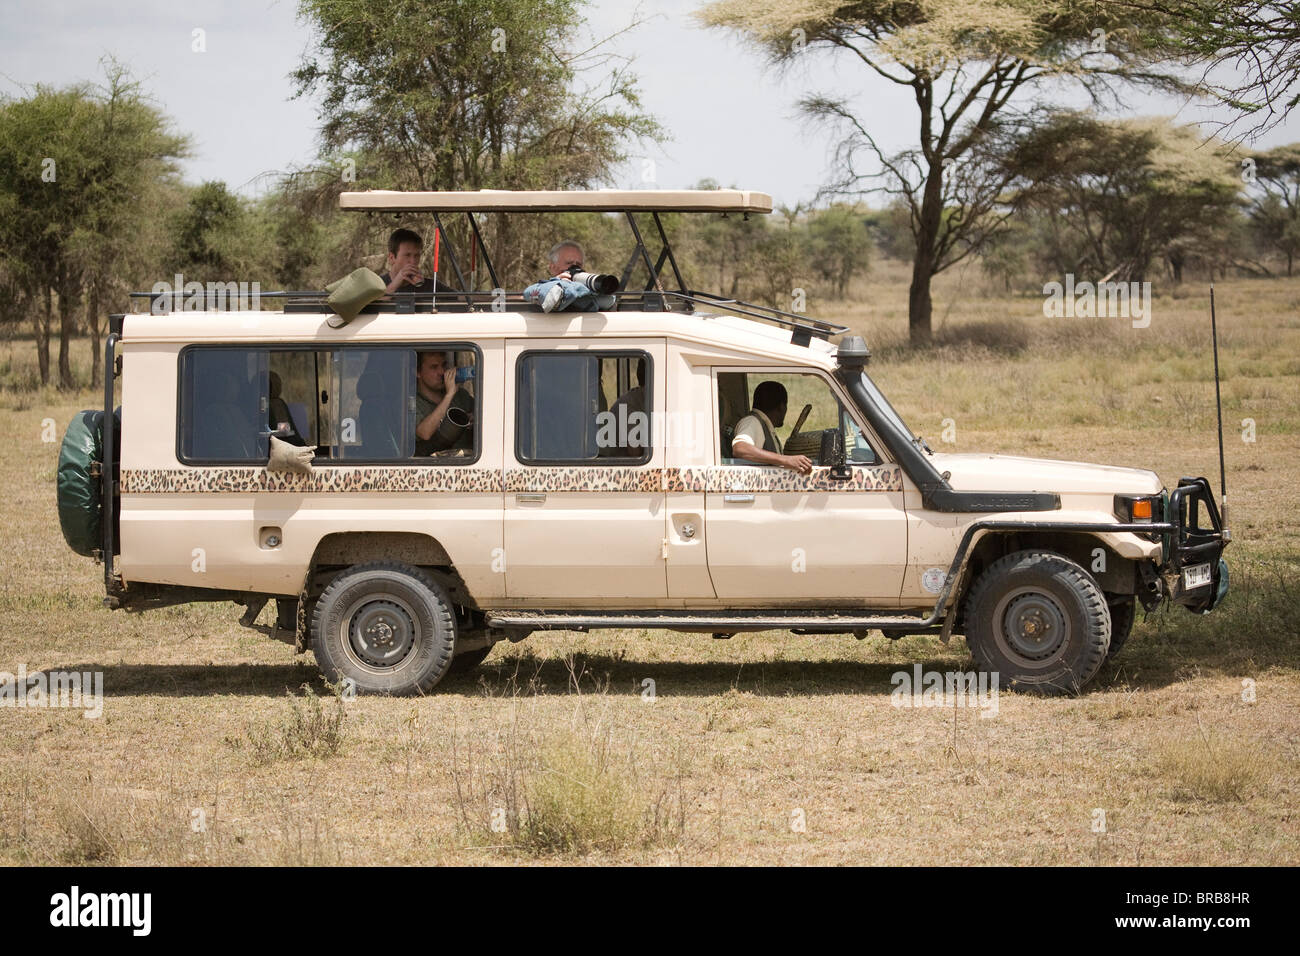 Toyota 4 x 4 Landcruiser on a photographic safari in Tanzania, Africa Stock Photo